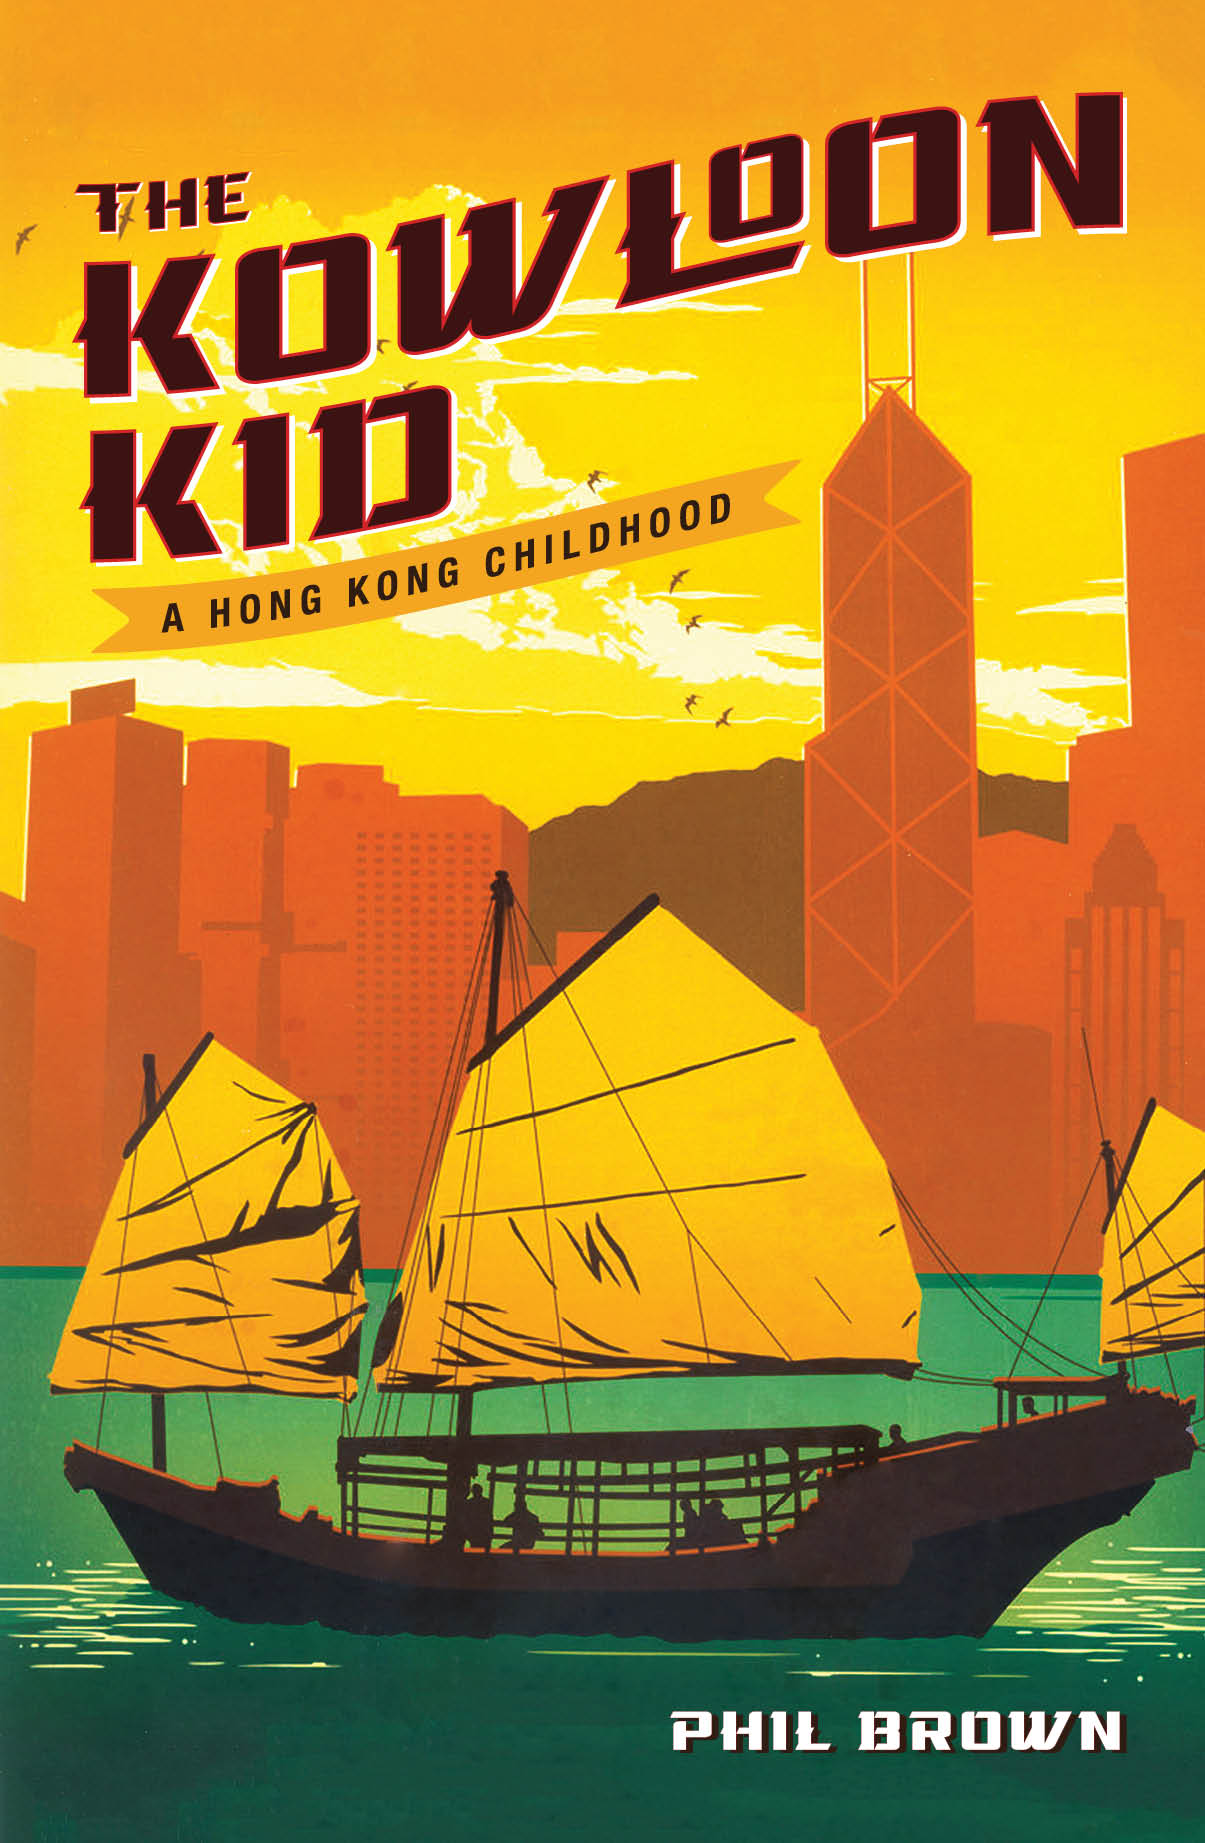 The Kowloon Kid by Phil Brown